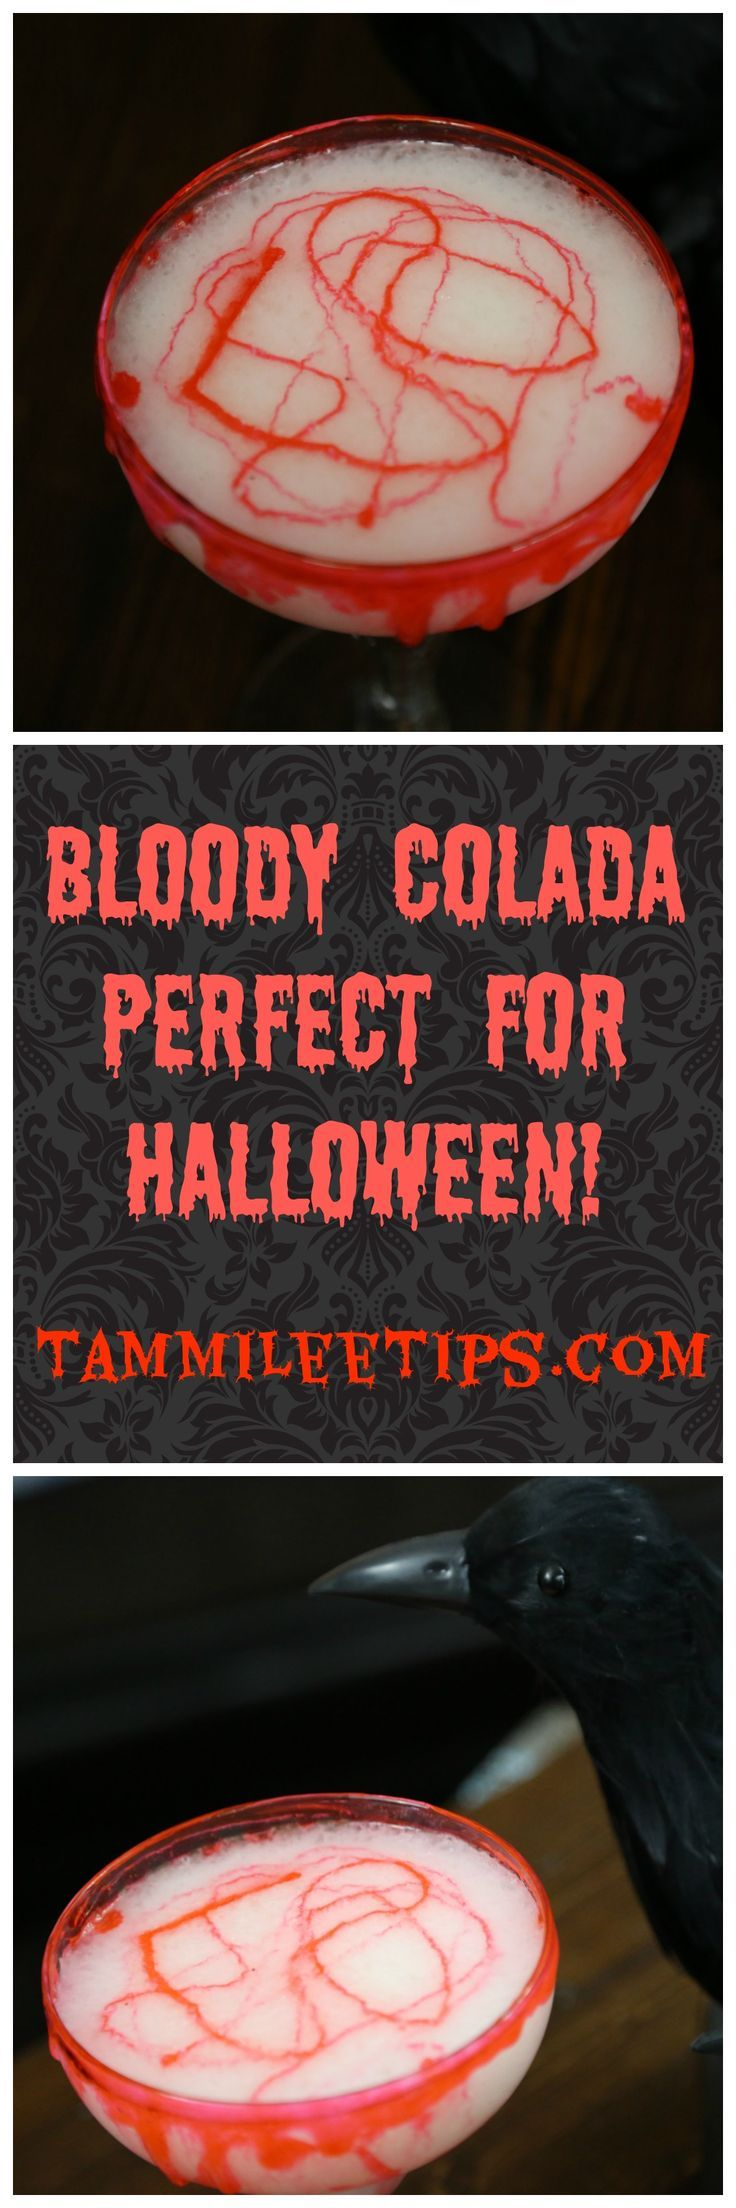 Your Halloween Cocktail Recipes need to include this Bloody Colada Recipe!  Easy to make! Perfect for a party or a crowd! Simple, Spooky, Fun that is perfect for Halloween! Easily made with alcoholic or non-alcoholic depending on your event!